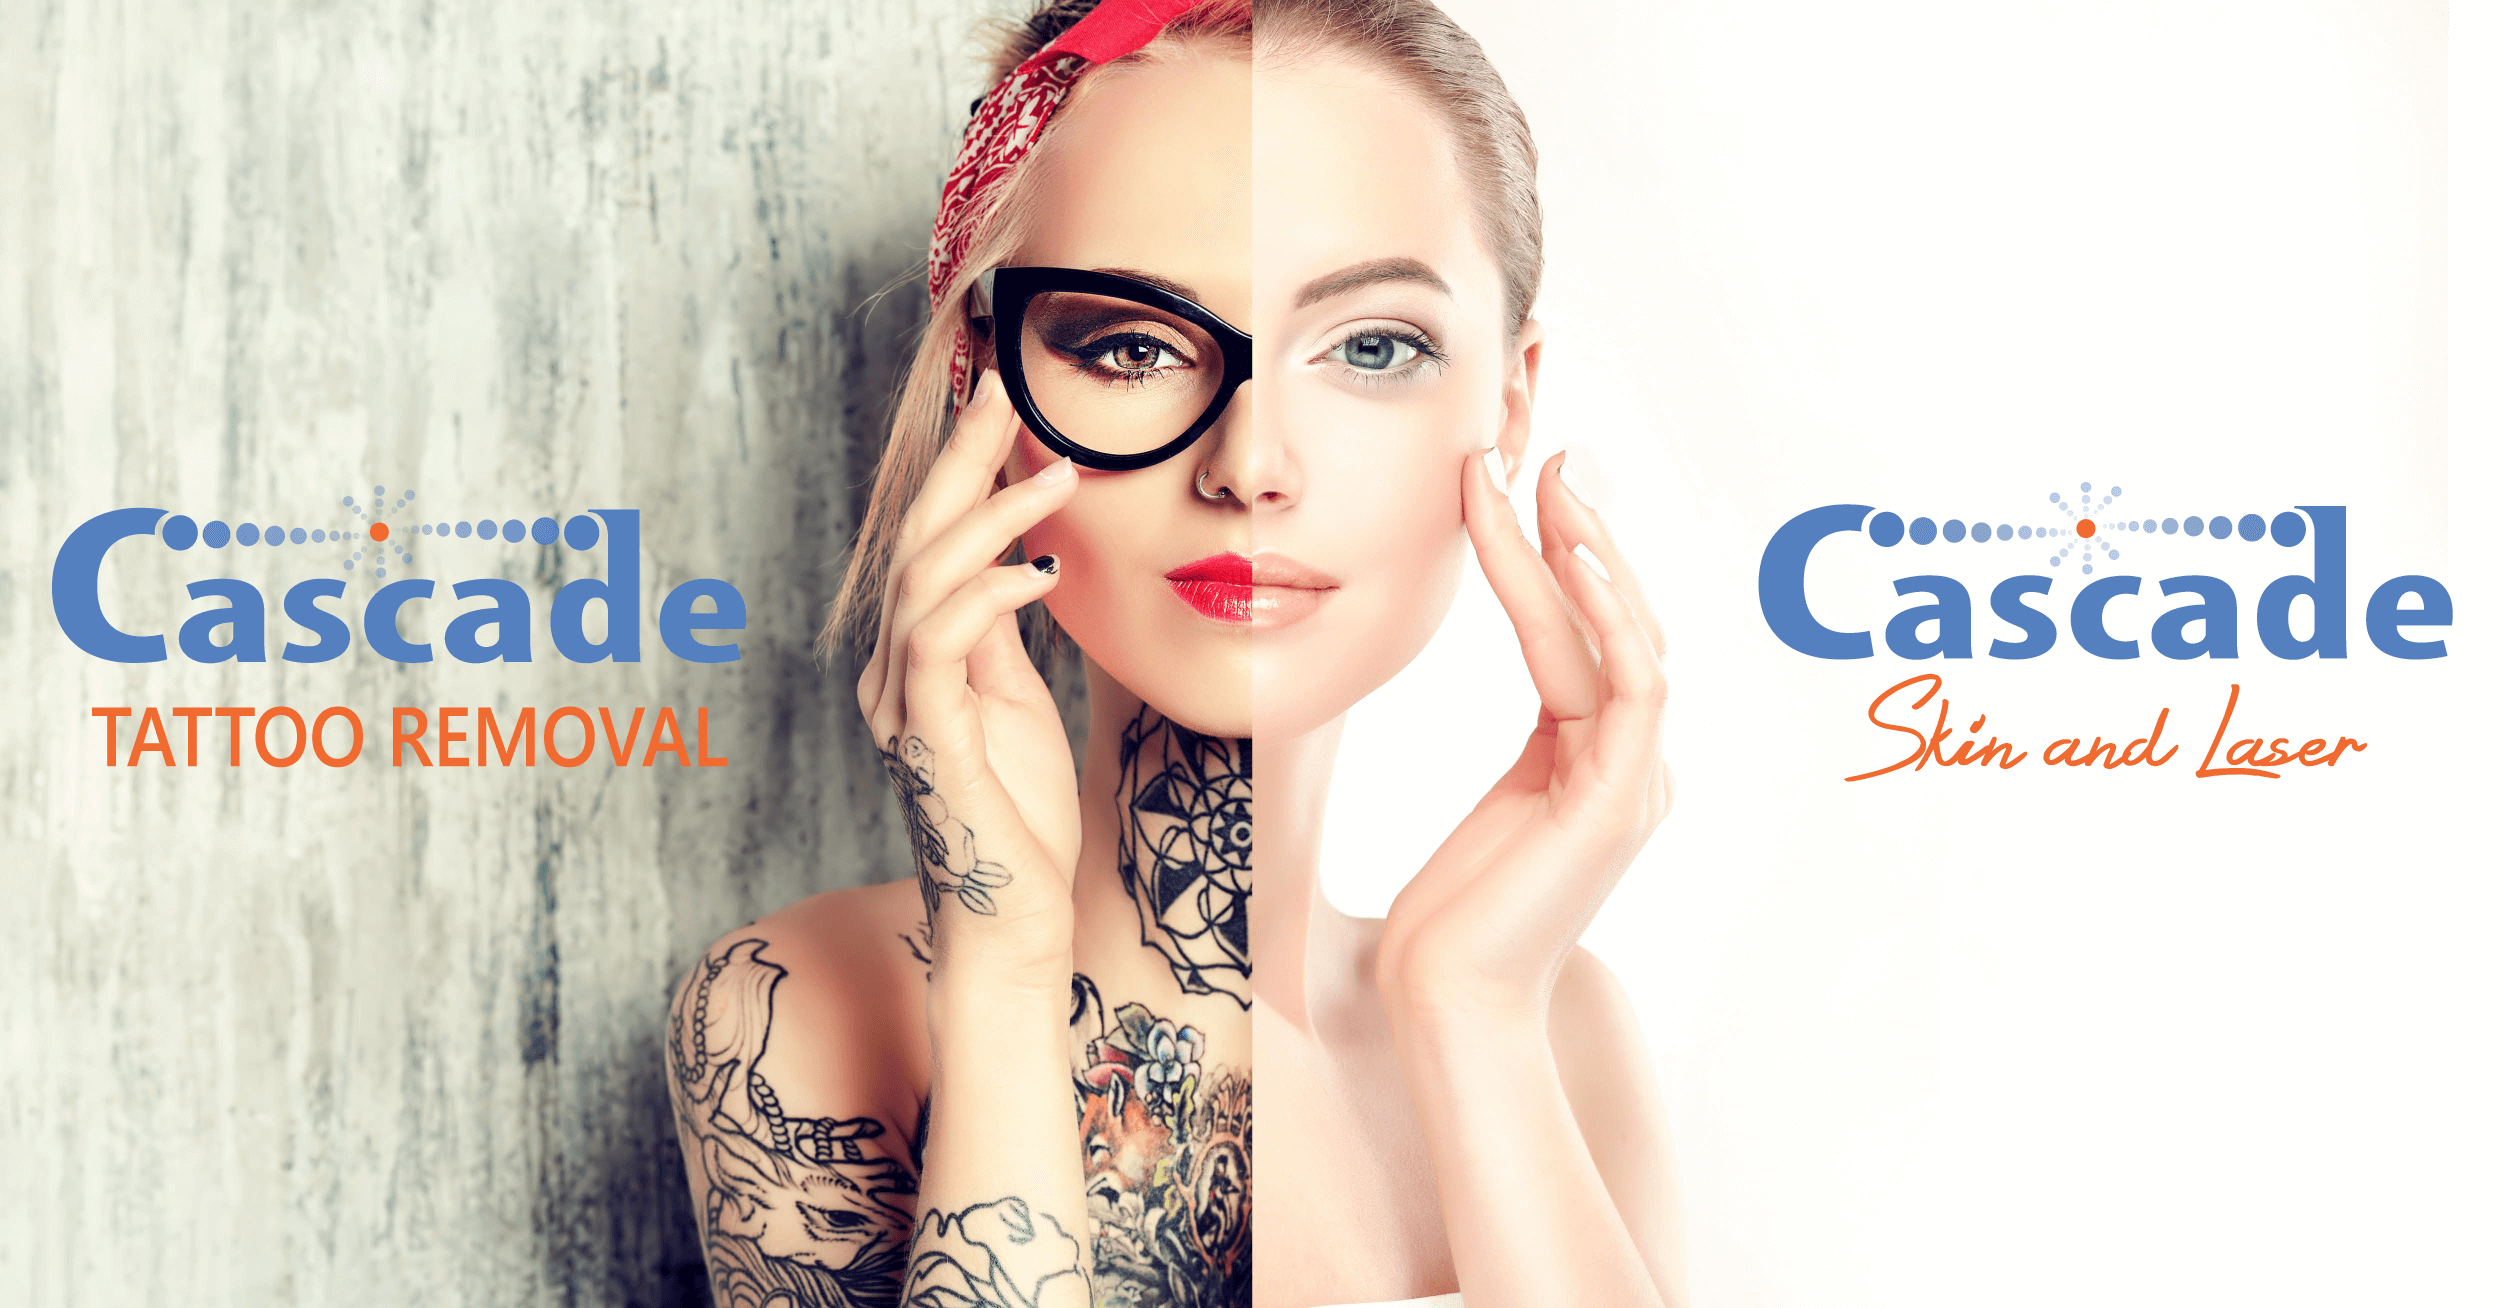 Portland Tattoo Removal, Skin Care, Hair Loss, Injectables